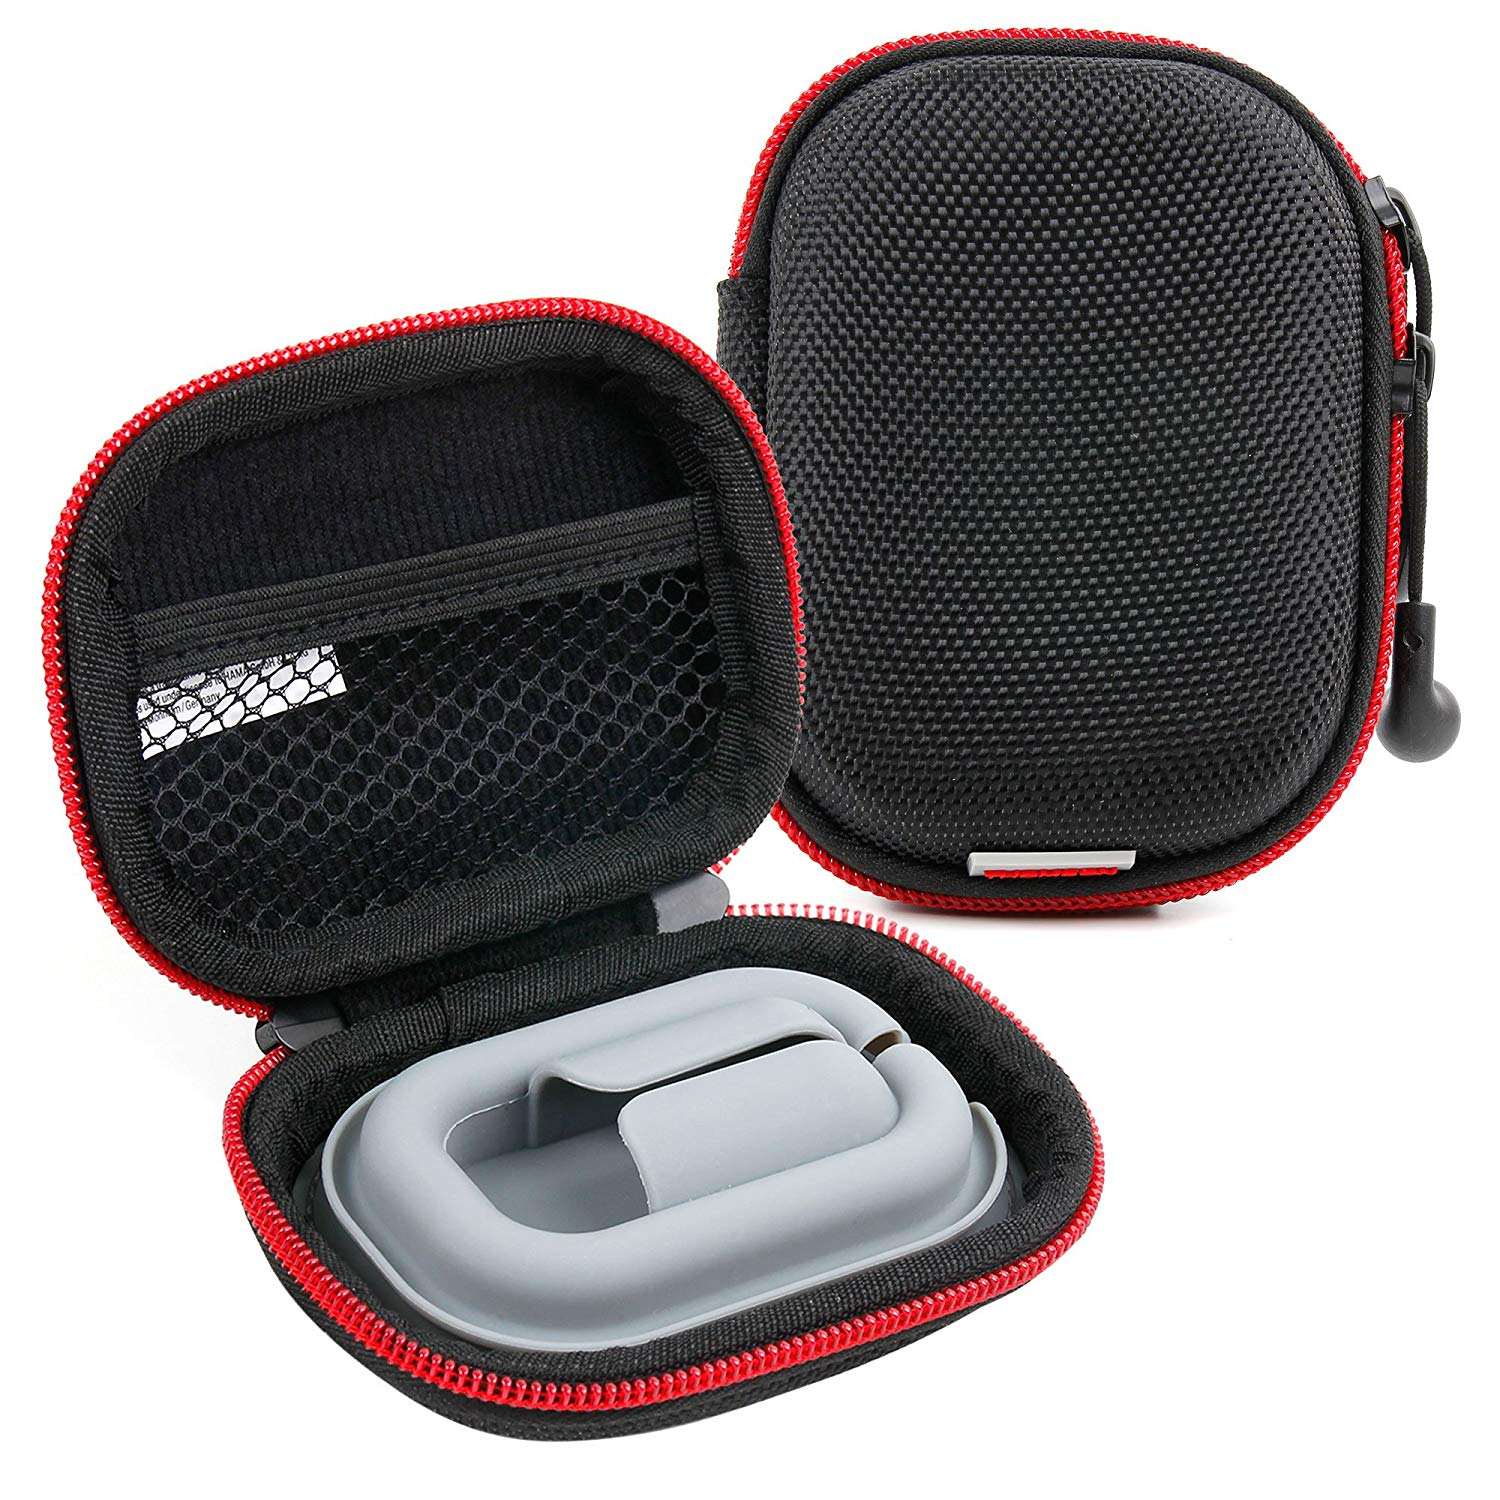 DURAGADGET Hard EVA Storage Case/Bag with Protective Silicone Padding for Earphones in Black and Red for Sony: MDREX50LPB/MDREX50LPR/MDREX50LPW/XBA-4/XBA-2/XBA-C10